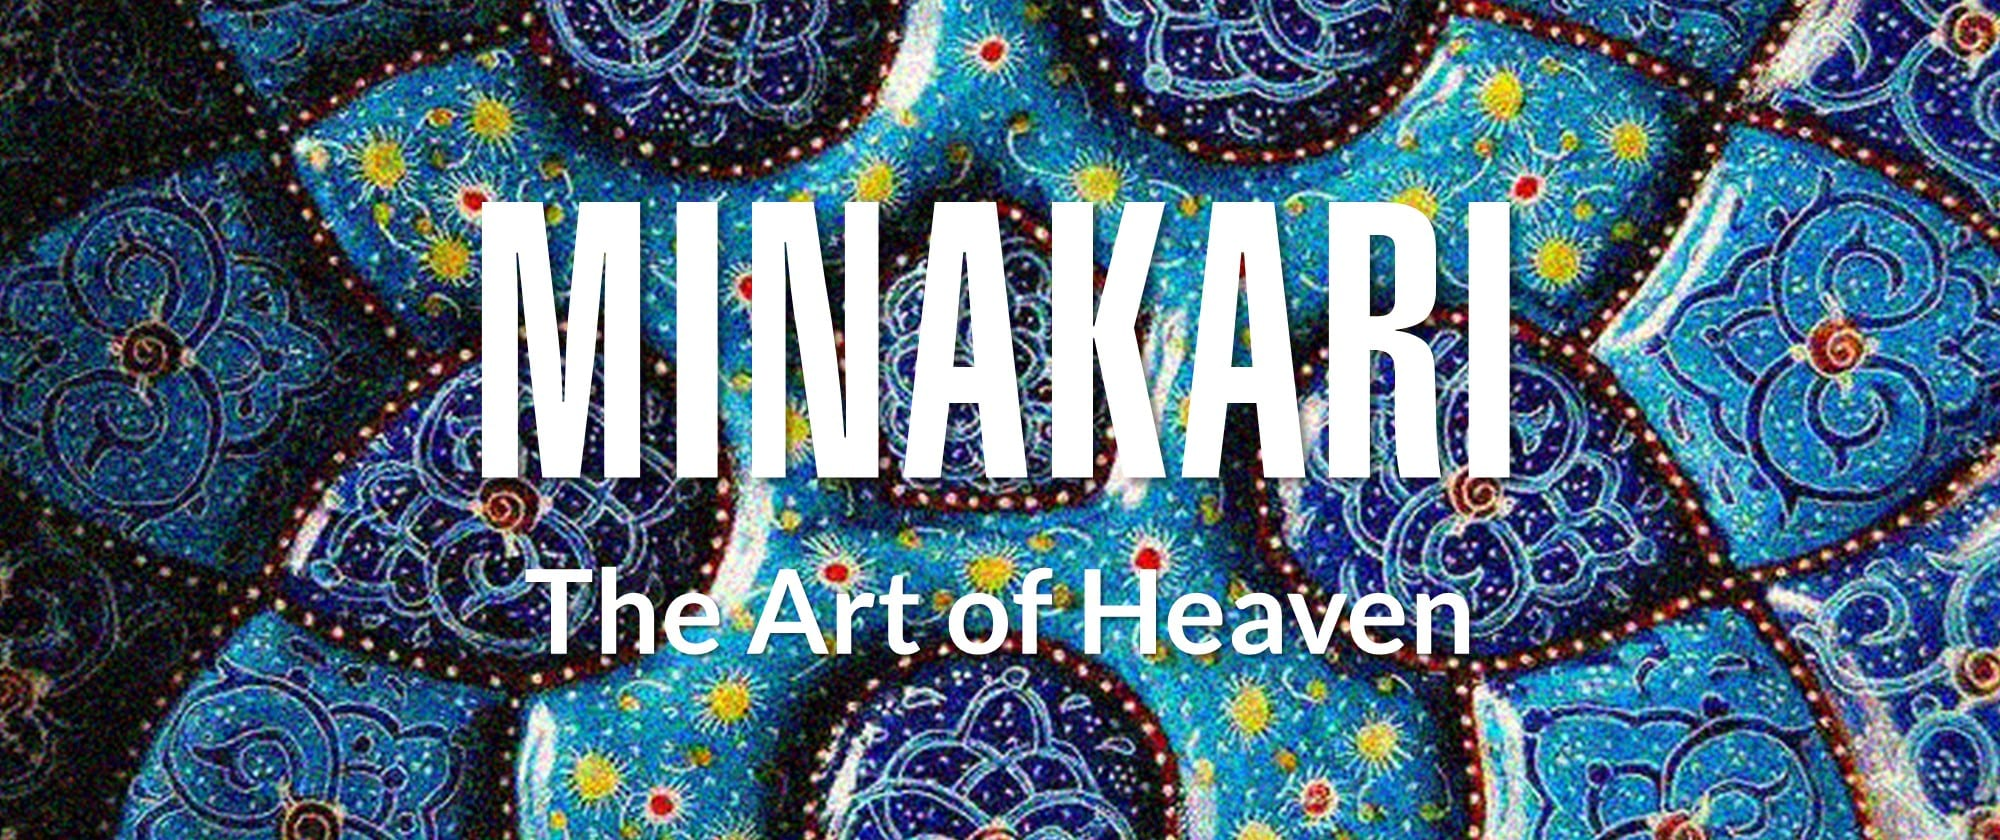 Iranian Minakari The Art Of Heaven Surfiran